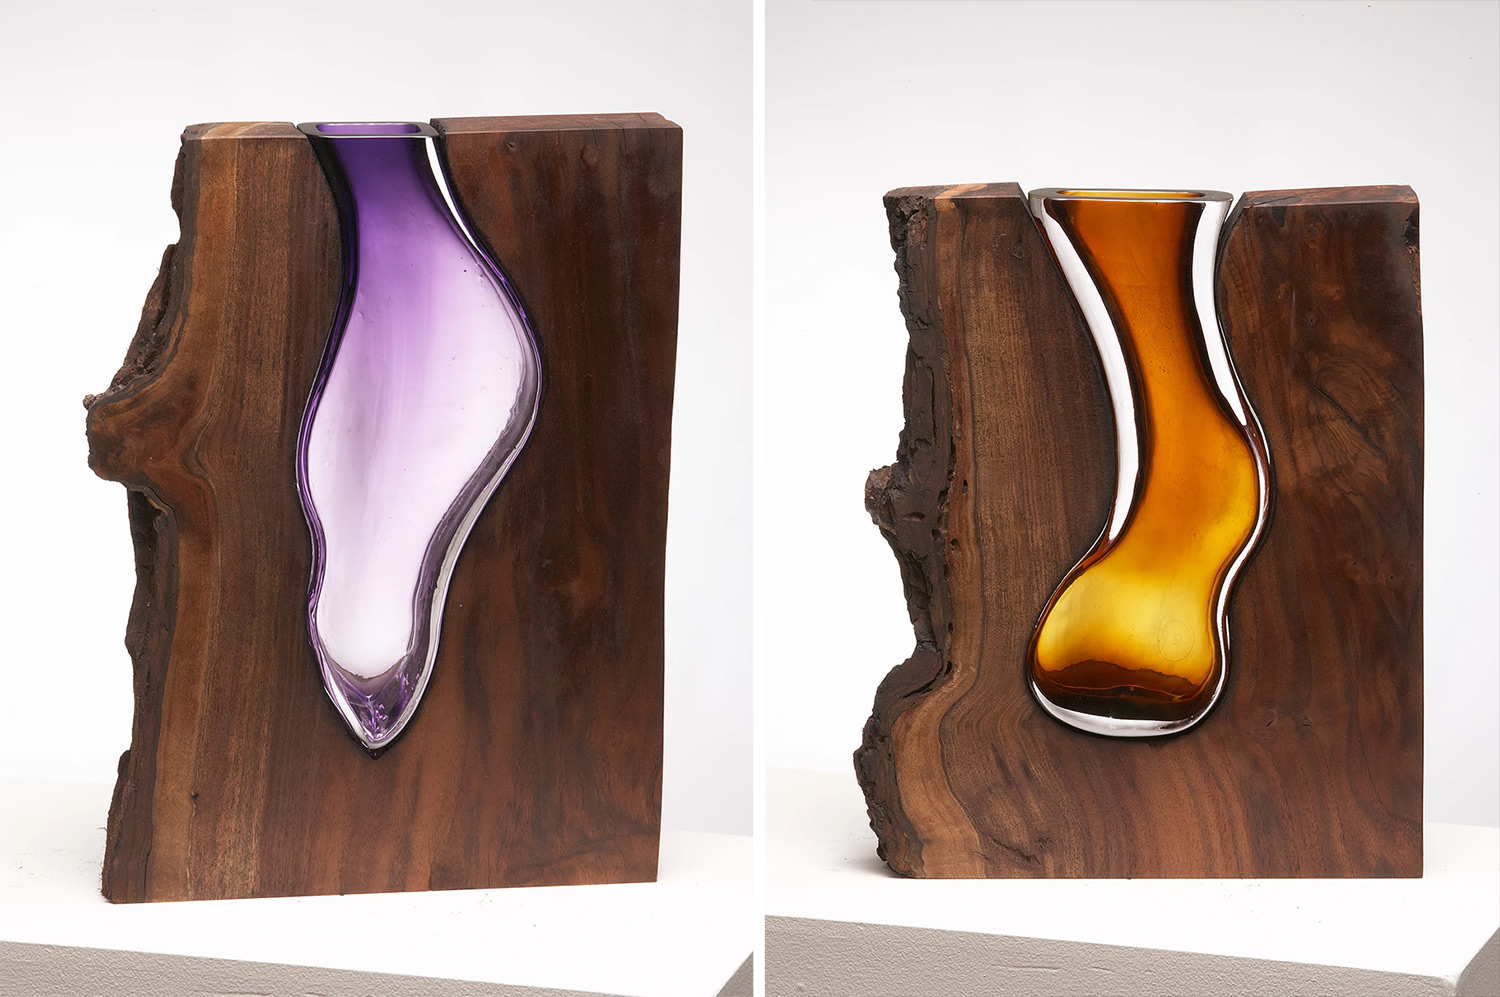 Glass Vases Formed Within Wooden Enclosures by Scott Slagerman Studio